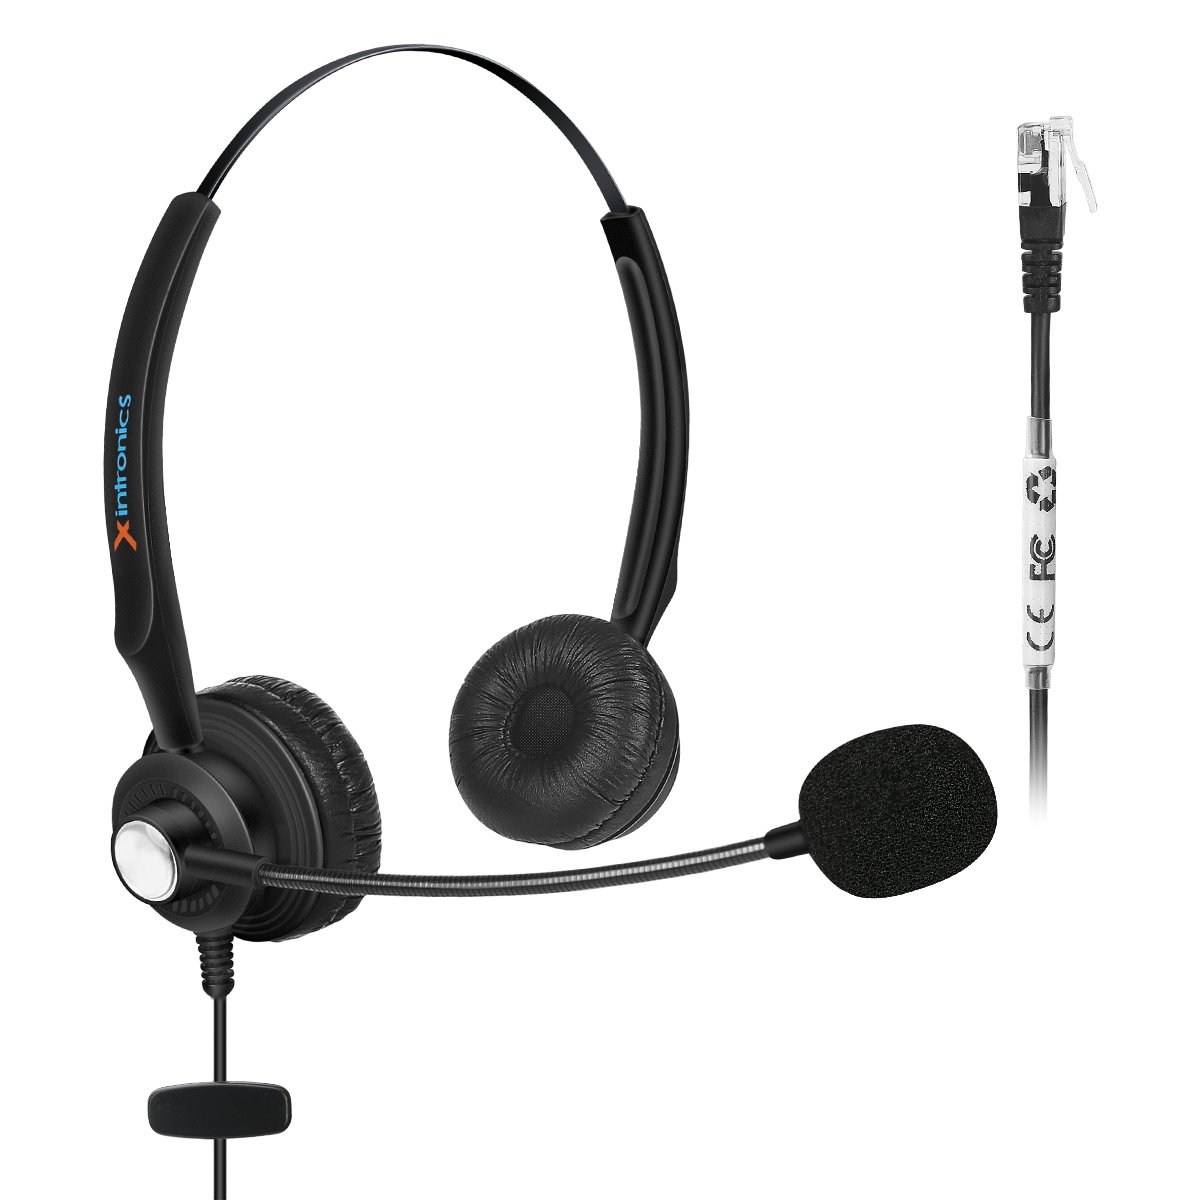 Fivetech Corded Headset w/ Noise Canceling Mic for NEC Aspire Dterm Nortel Norstar Meridian Plantronics Polycom ShoreTel Siemens ROLM Toshiba Zultys Packet8